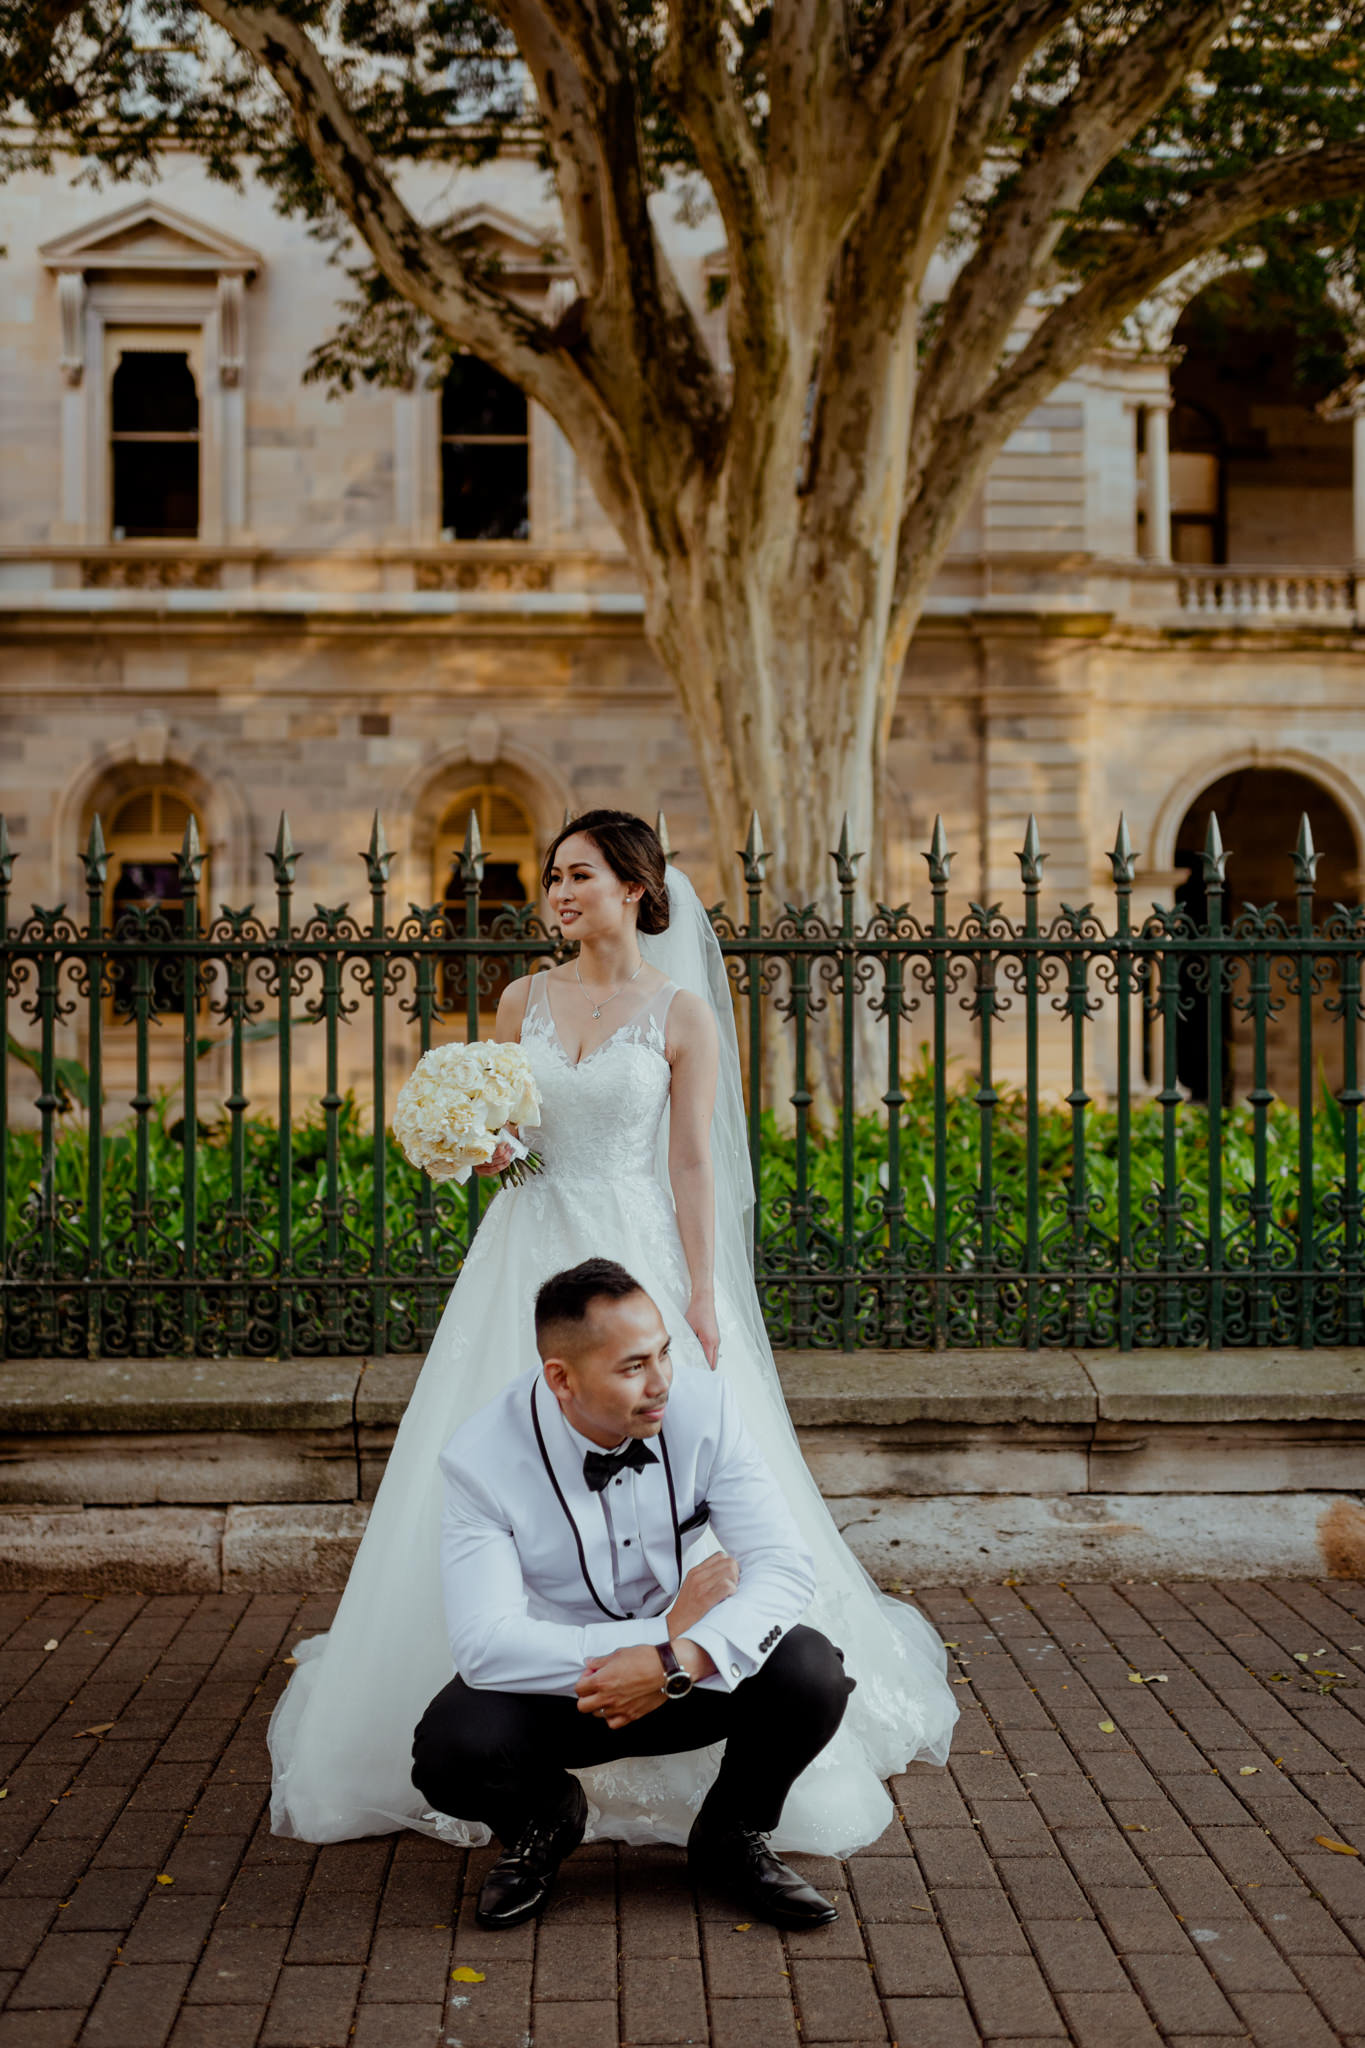 A Vietnamese wedding couple pose seriously in front of a fenced sandstone building